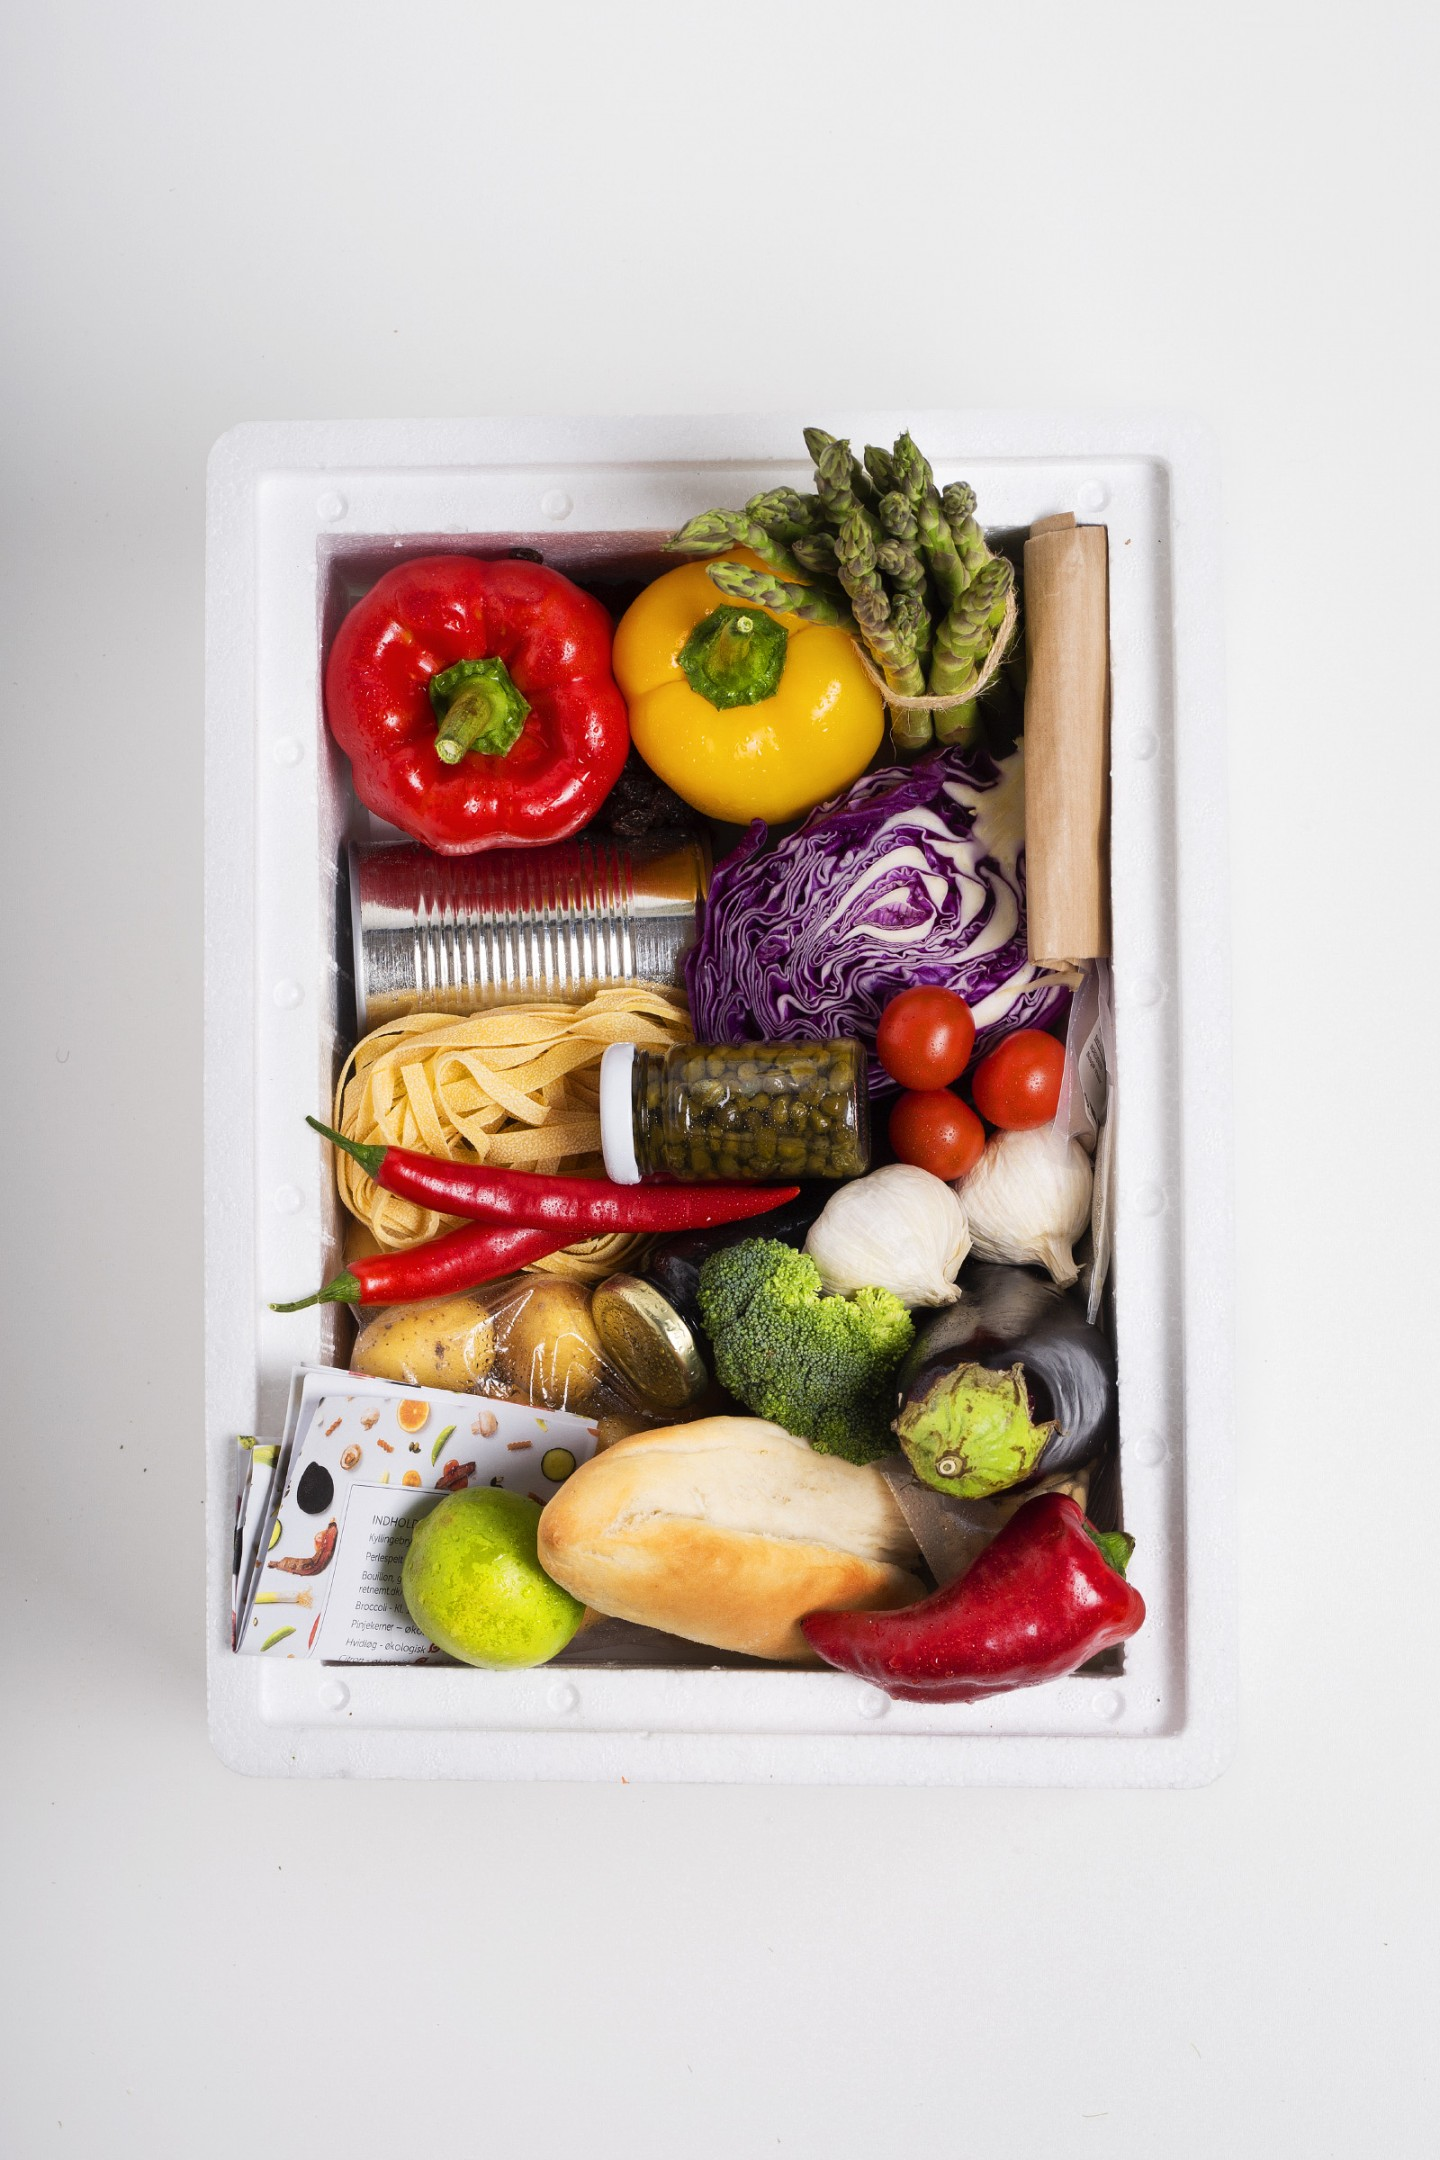 Food Box, mad fotografering